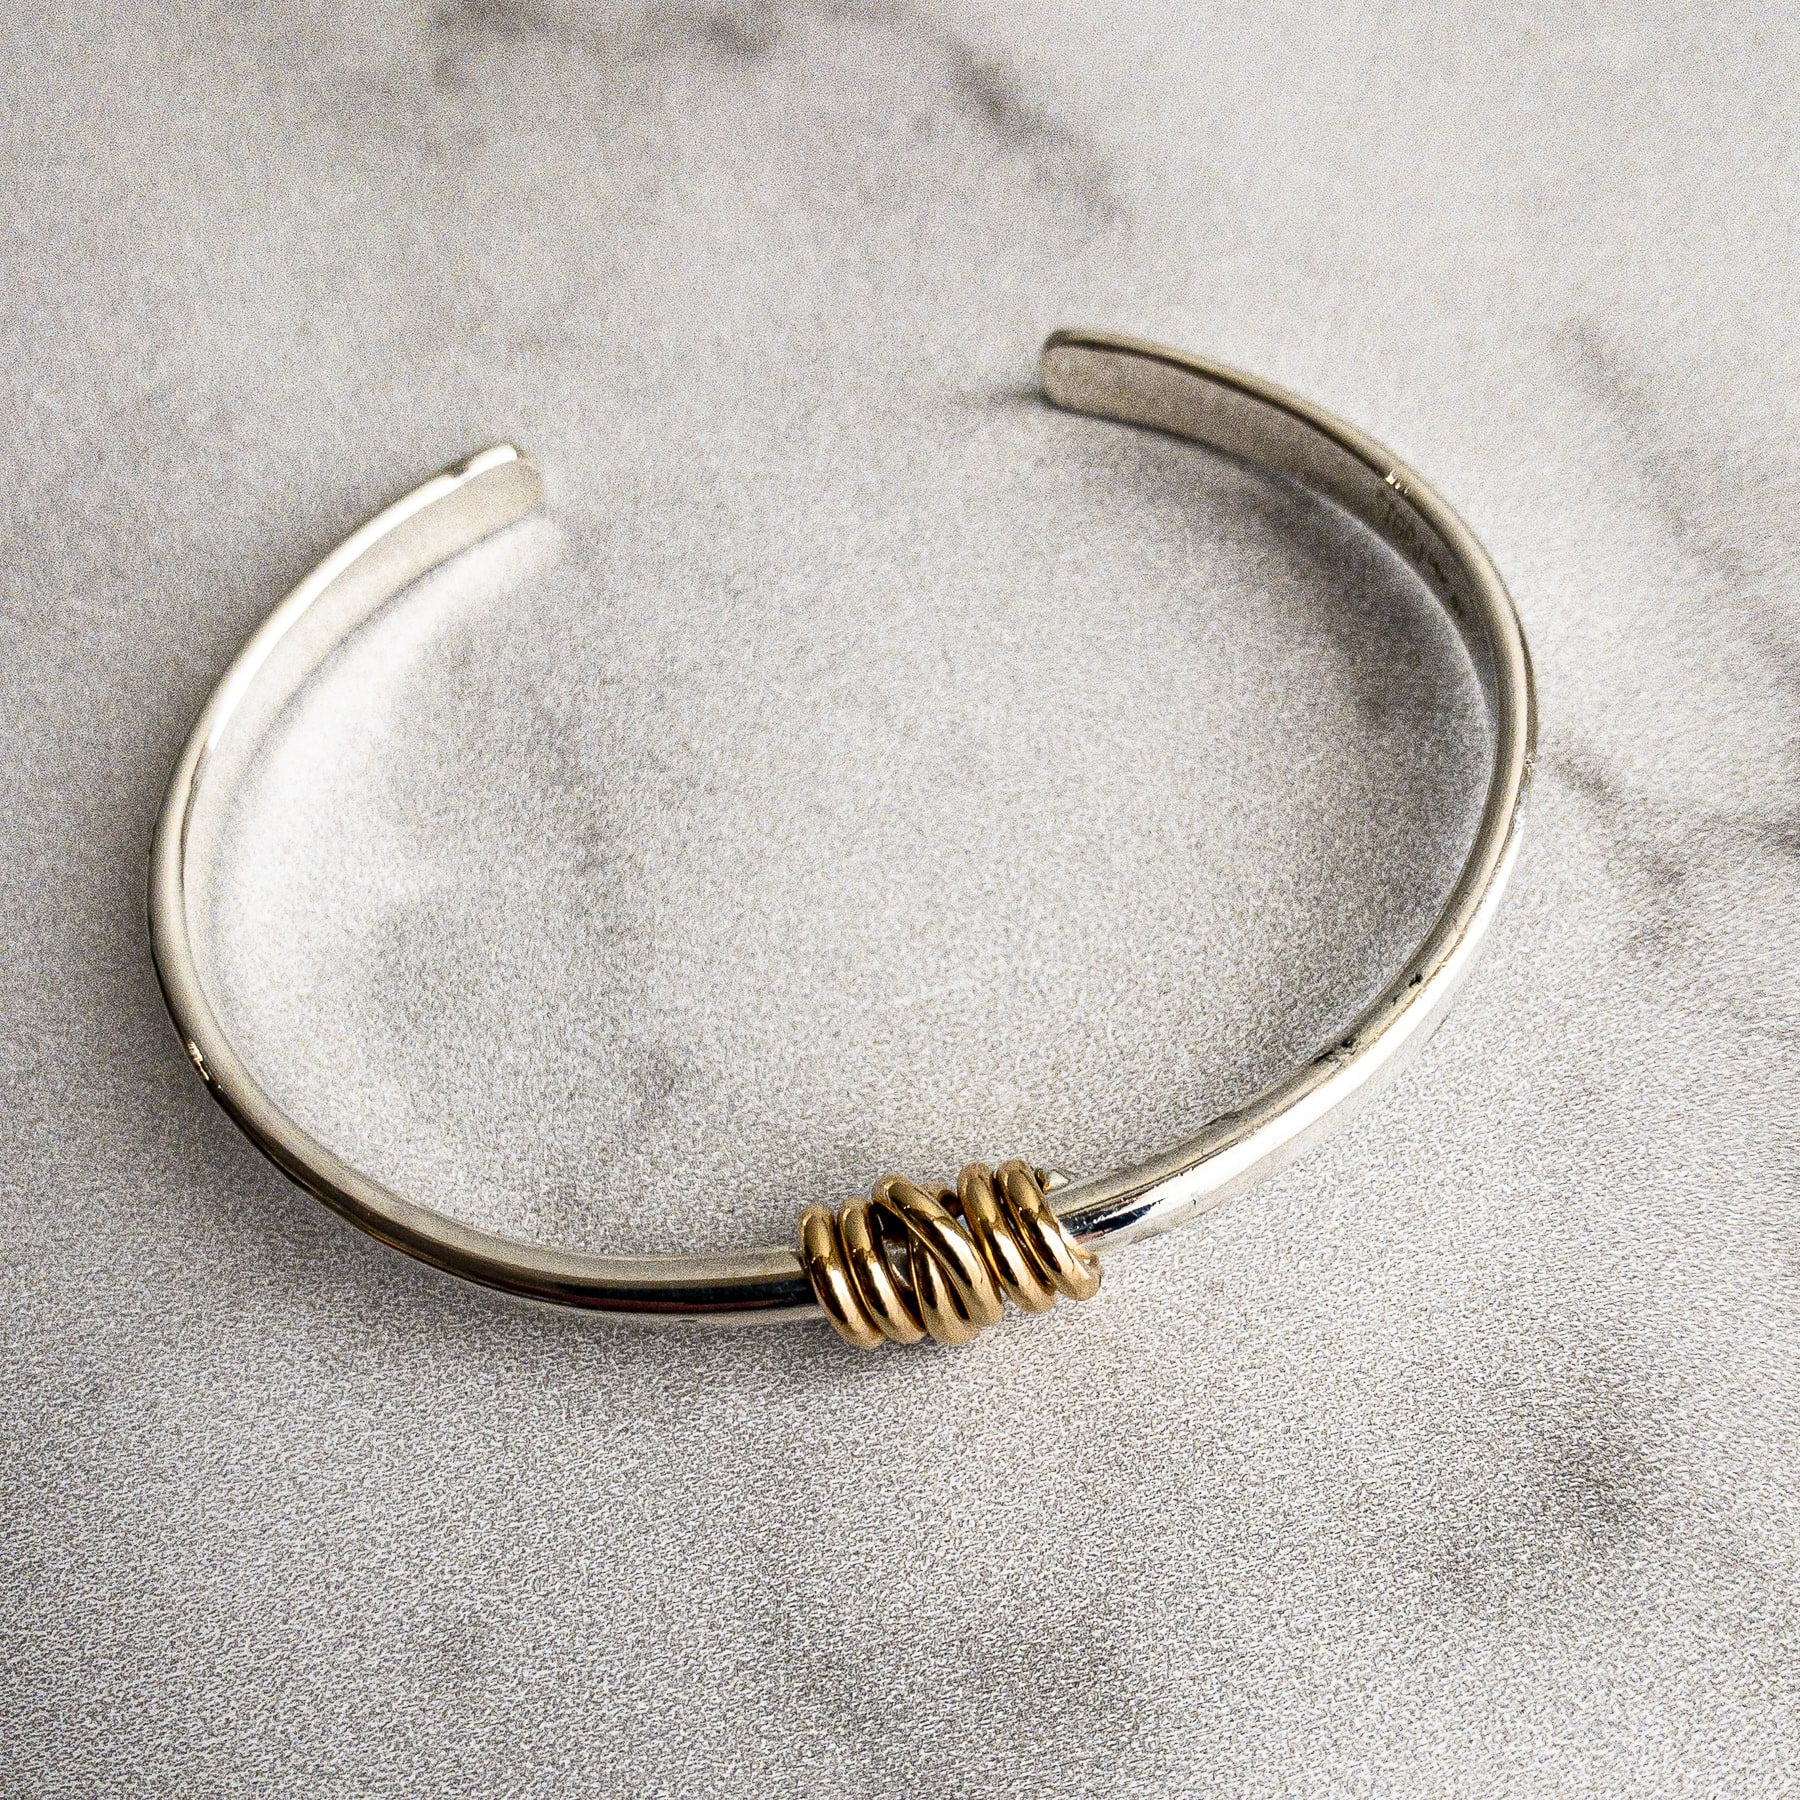 Silver Bracelet with Gold Knot